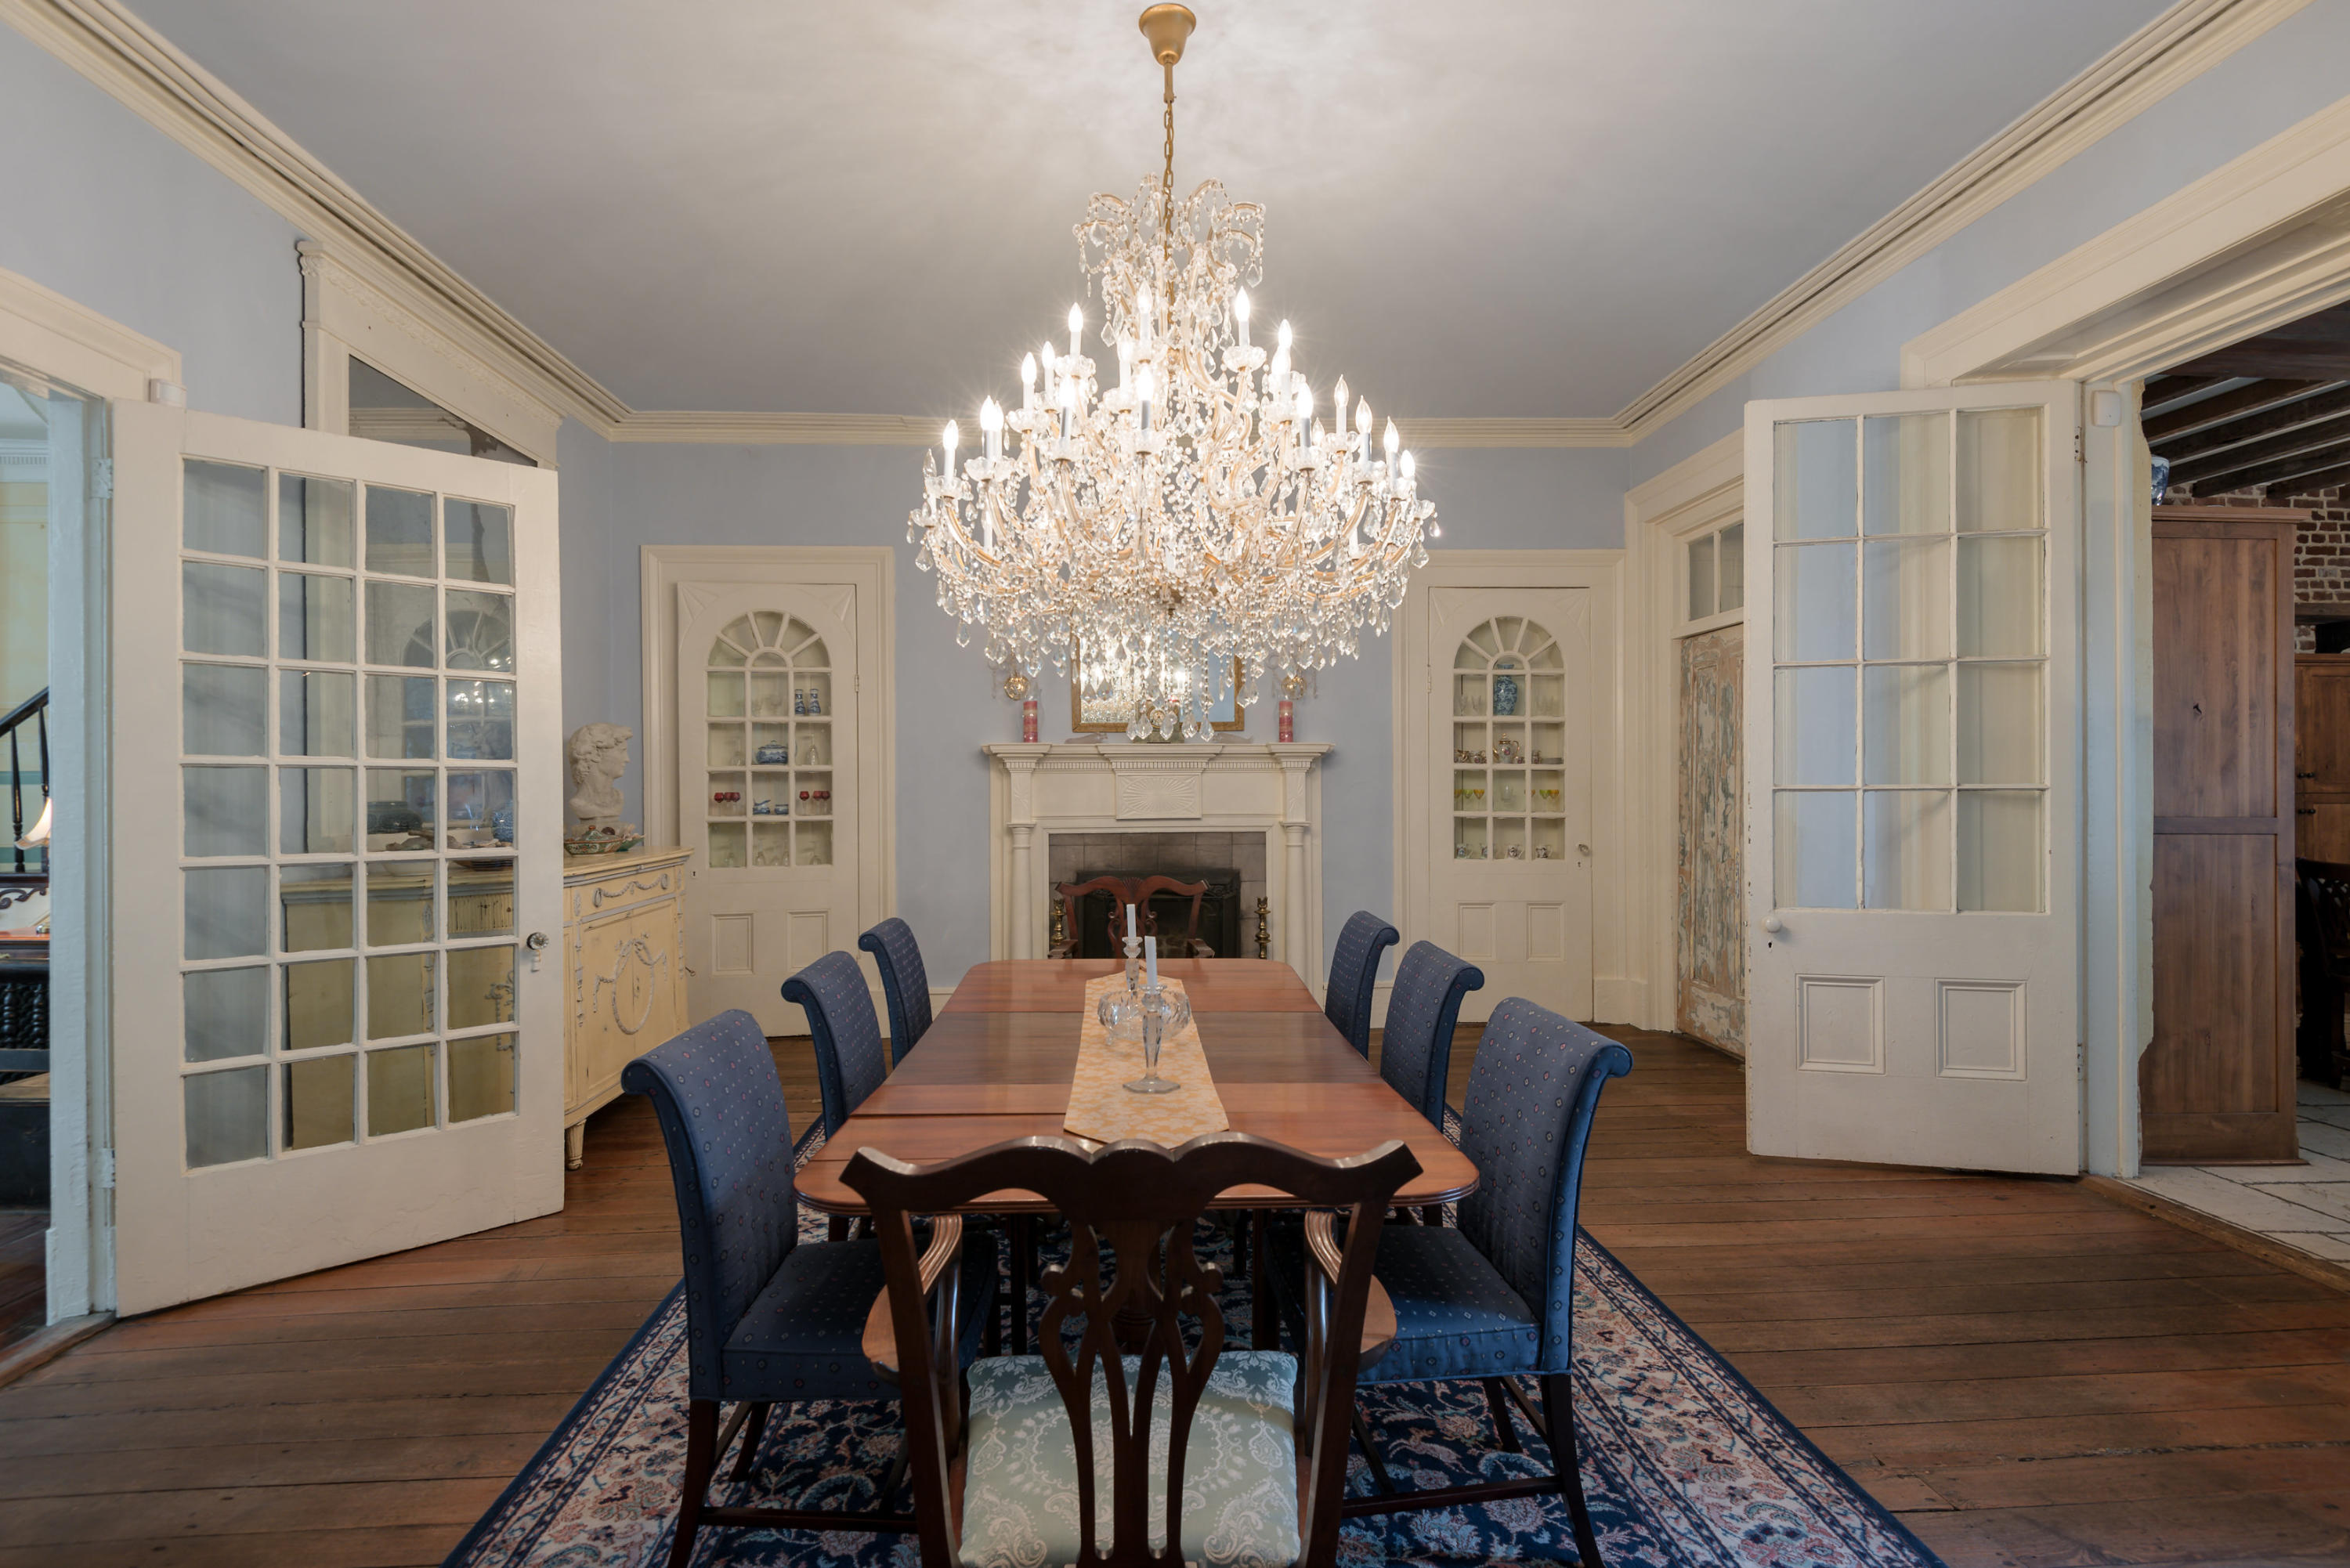 South of Broad Homes For Sale - 22 Church, Charleston, SC - 40